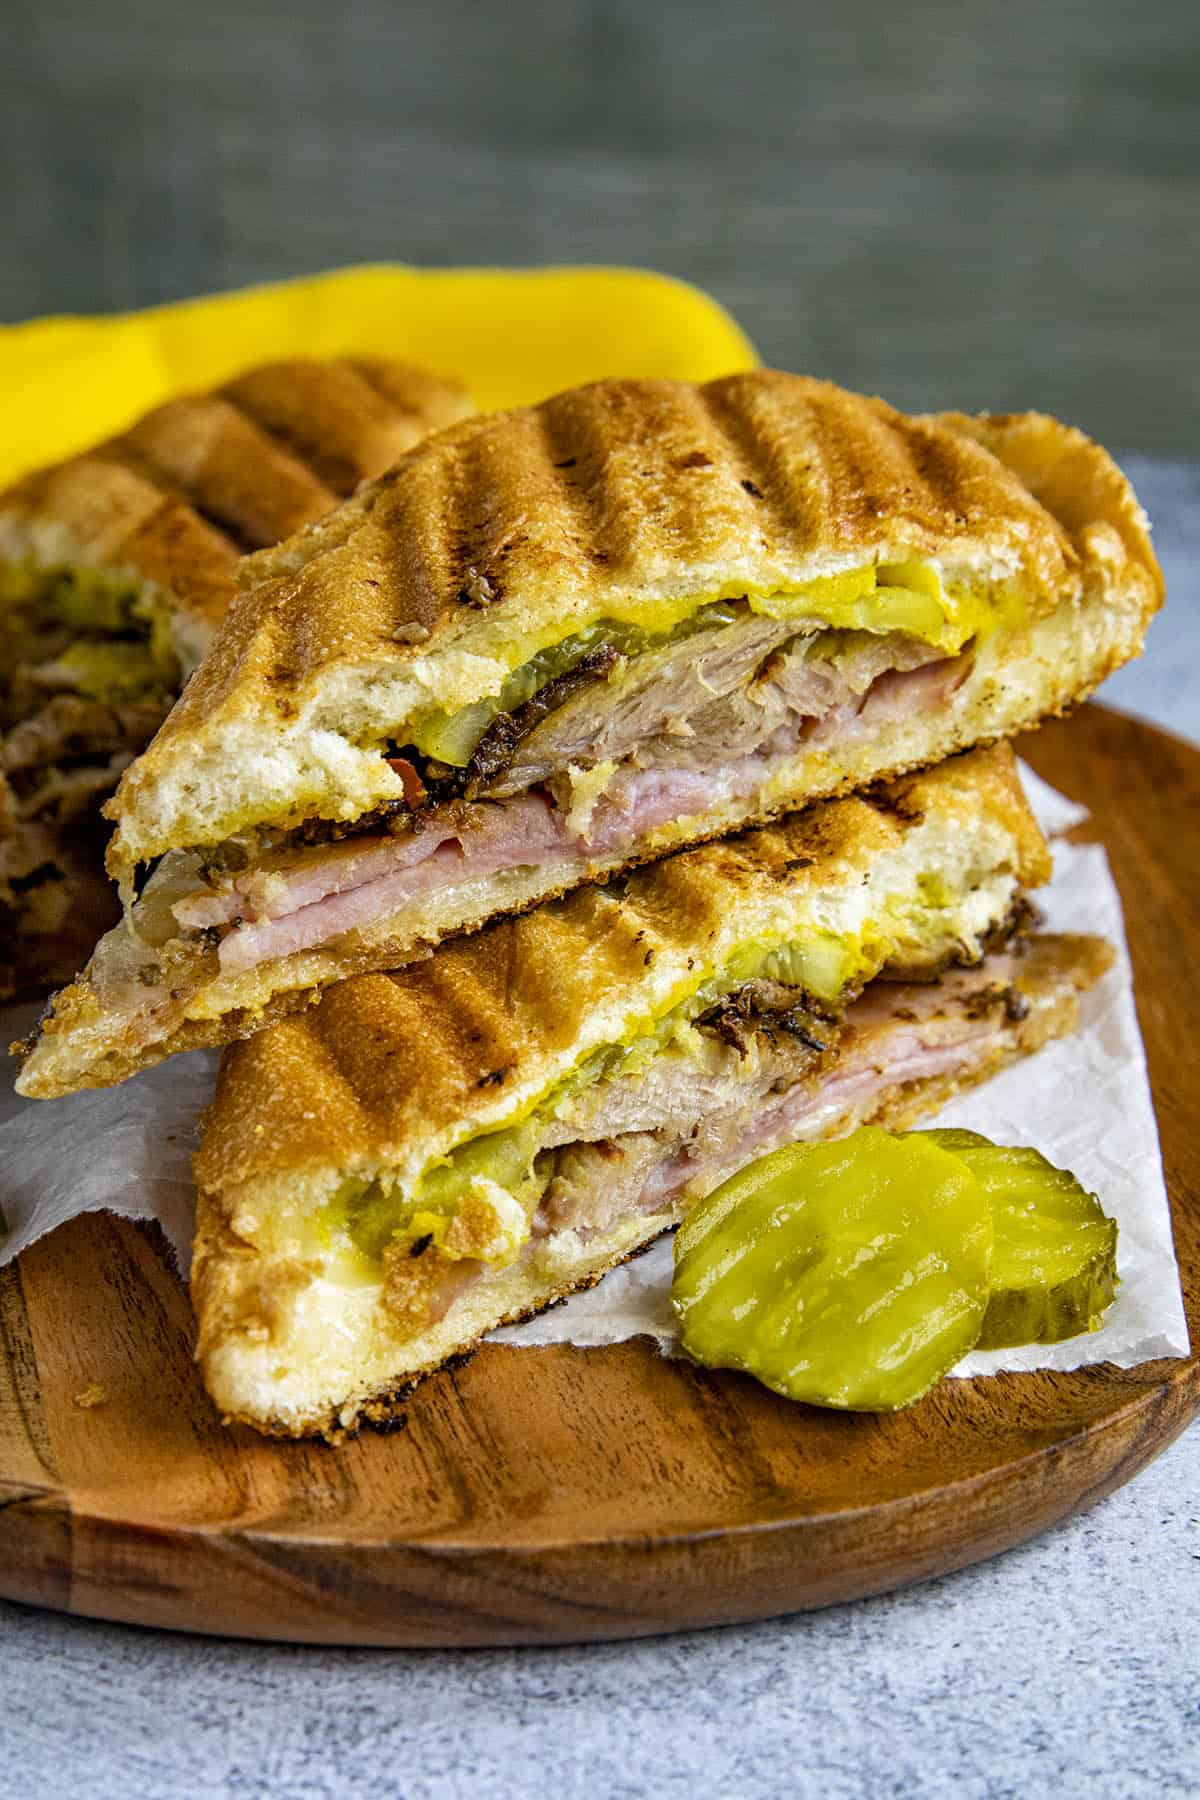 Slices Cuban Sandwiches on a plate